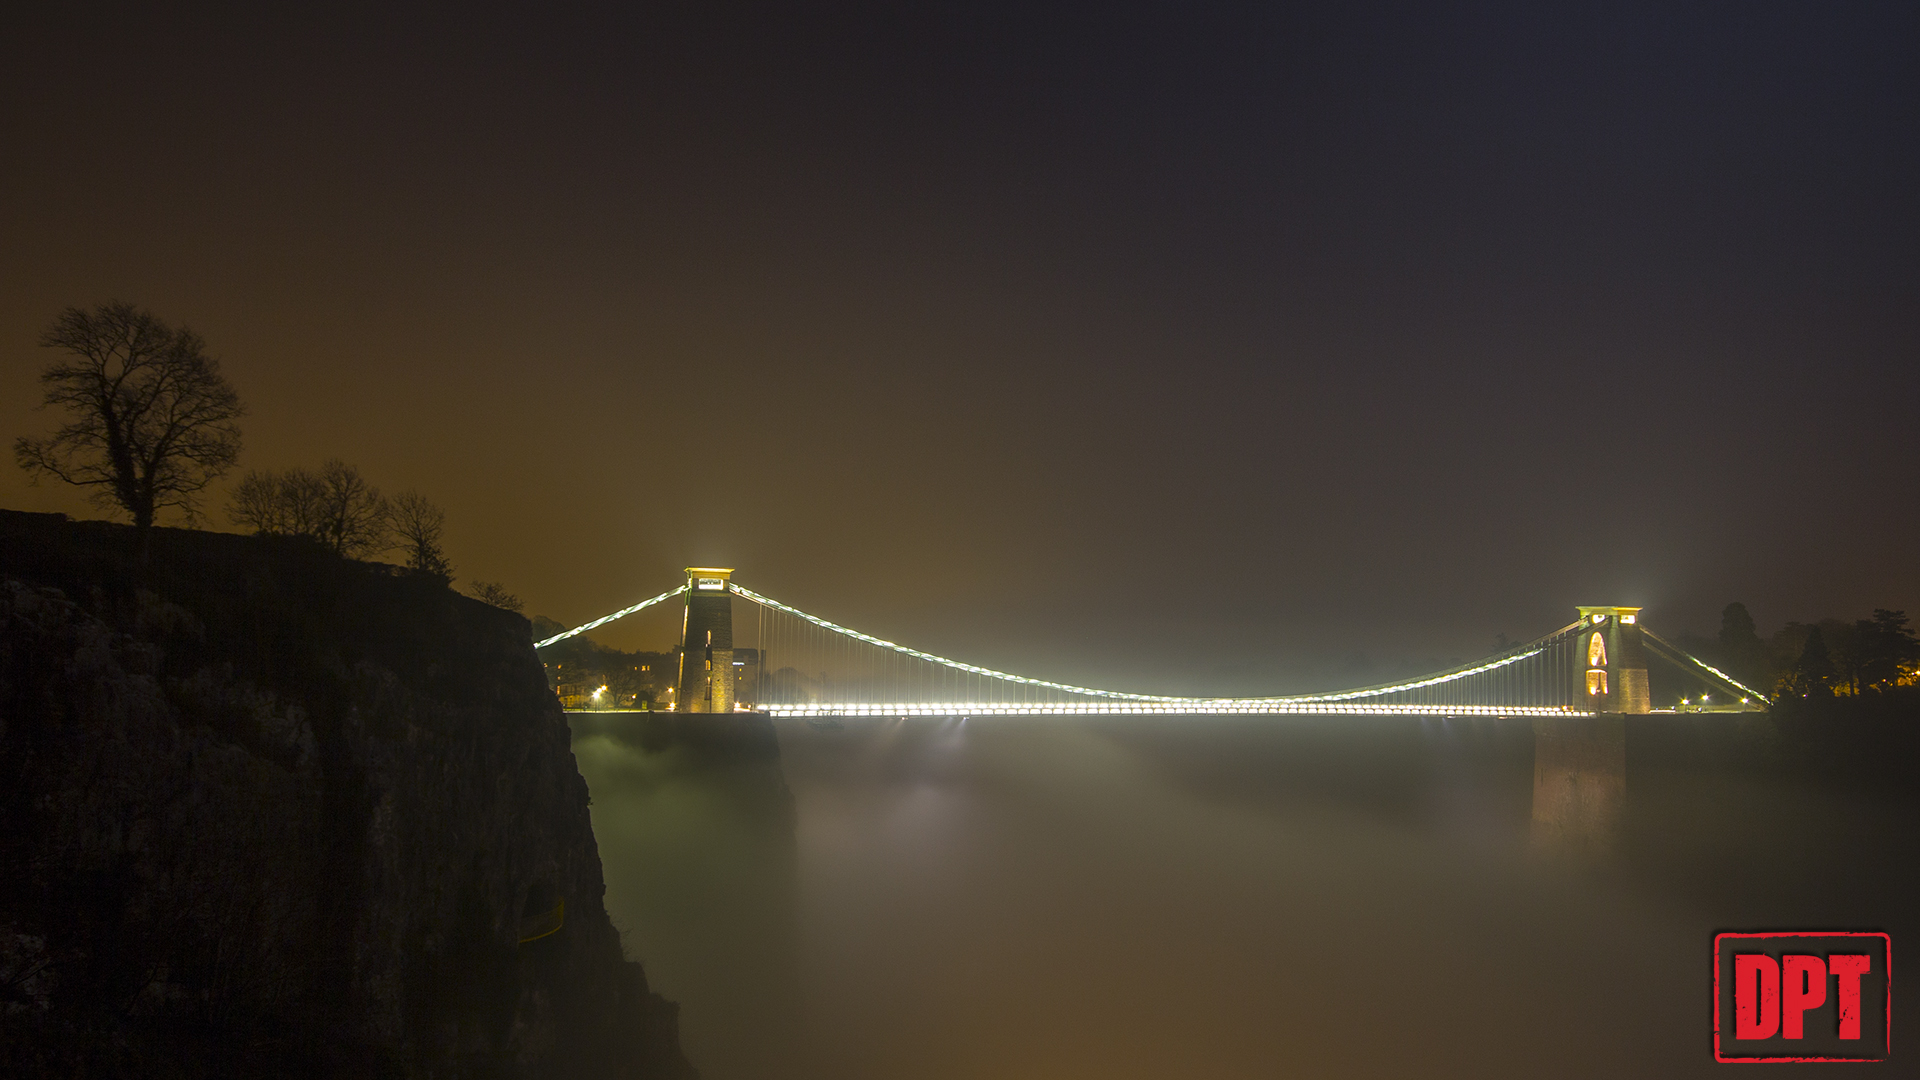 DPT - Clifton Suspension Bridge - Auto WB - 1080 - 1.4.jpg